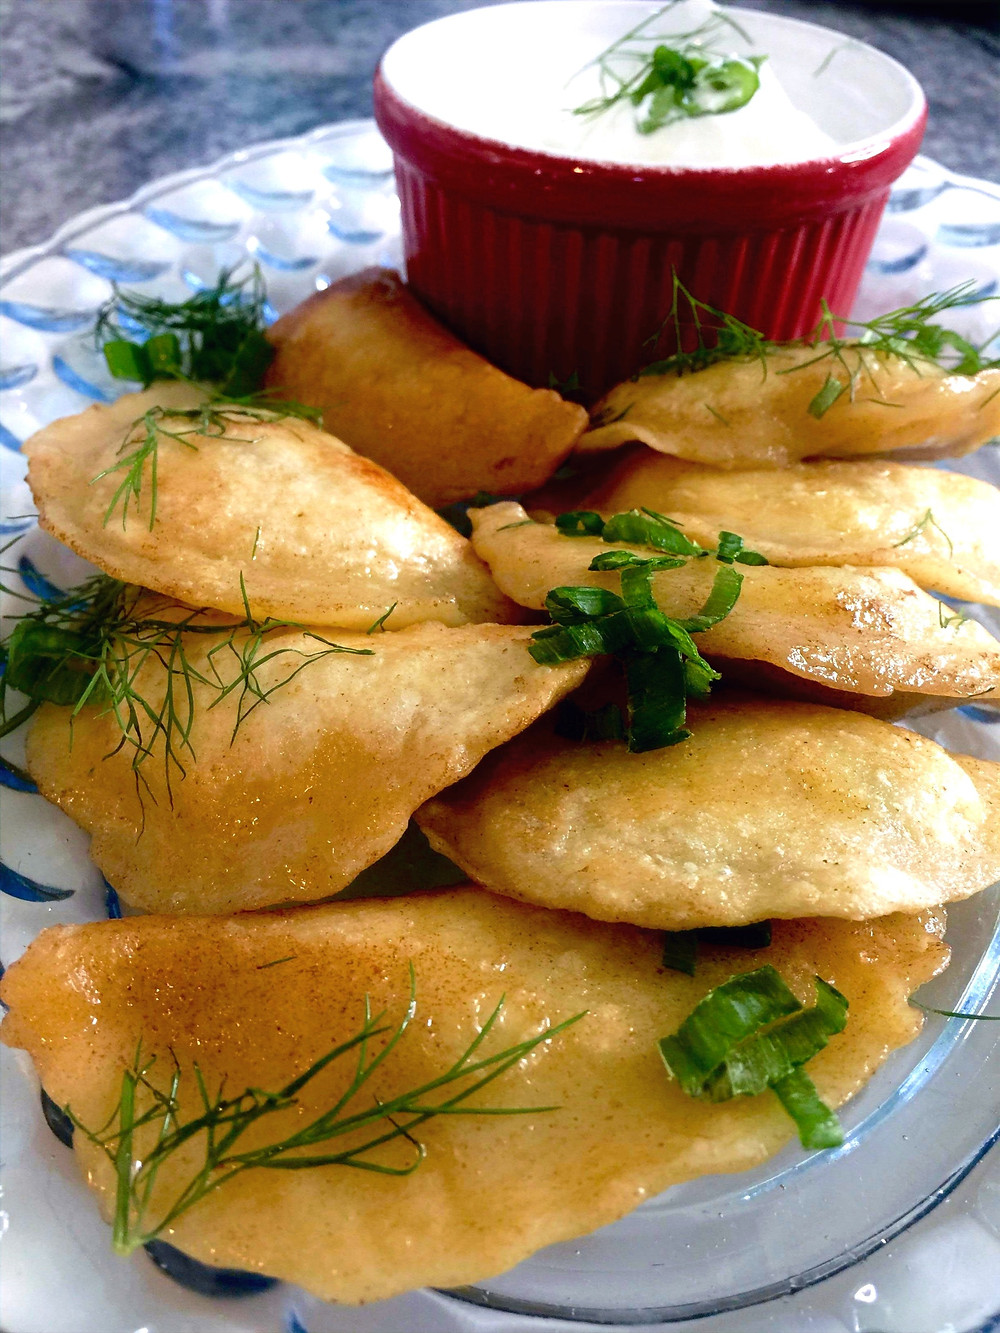 Plate of fried varenki (pierogies) topped with herbs, and a small bowl of sour cream